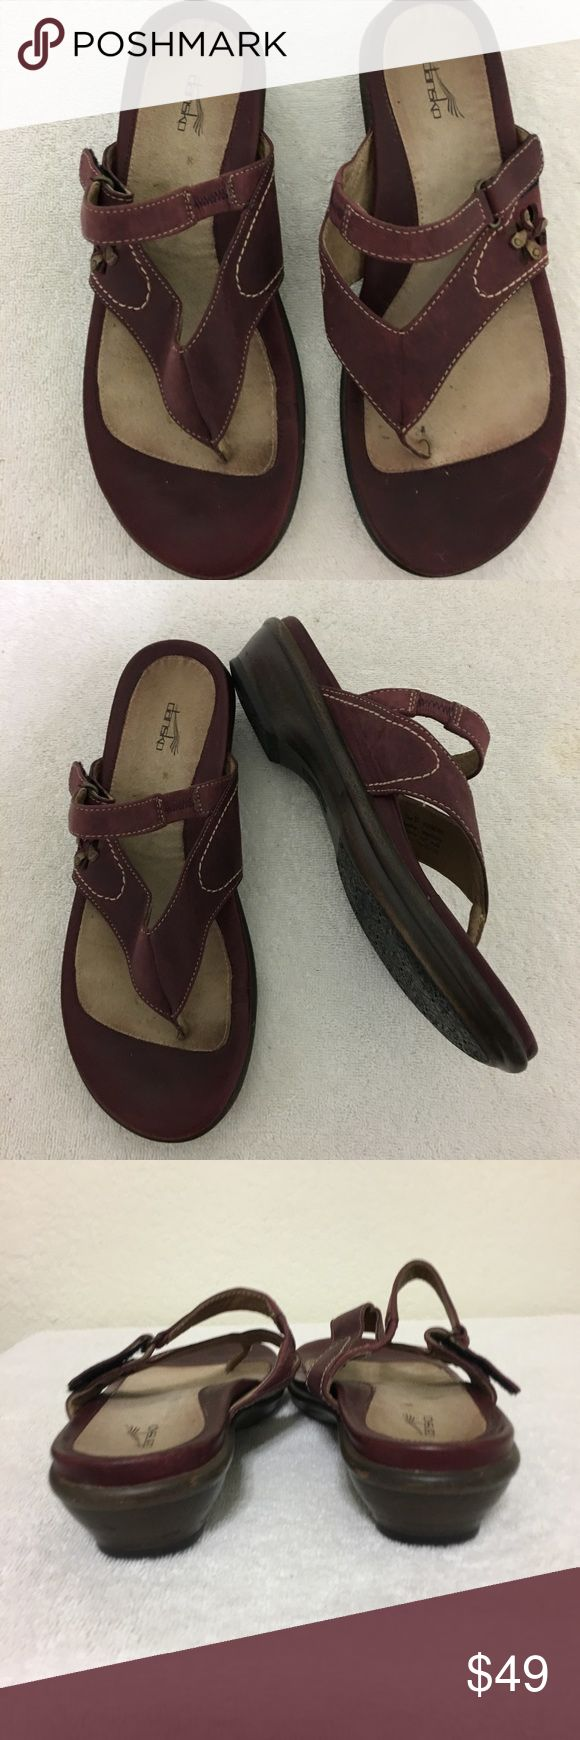 "Auth Dansko Leather Thong Sandals 6.5 Burgundy Authentic Dansko leather thong sandals, Size 6.5 for sale.  Burgundy/Merlot color with 1"" heels.  Adjustable strap utilizing velcro with small floral detail.  Light wear, good condition. Dansko Shoes Sandals"